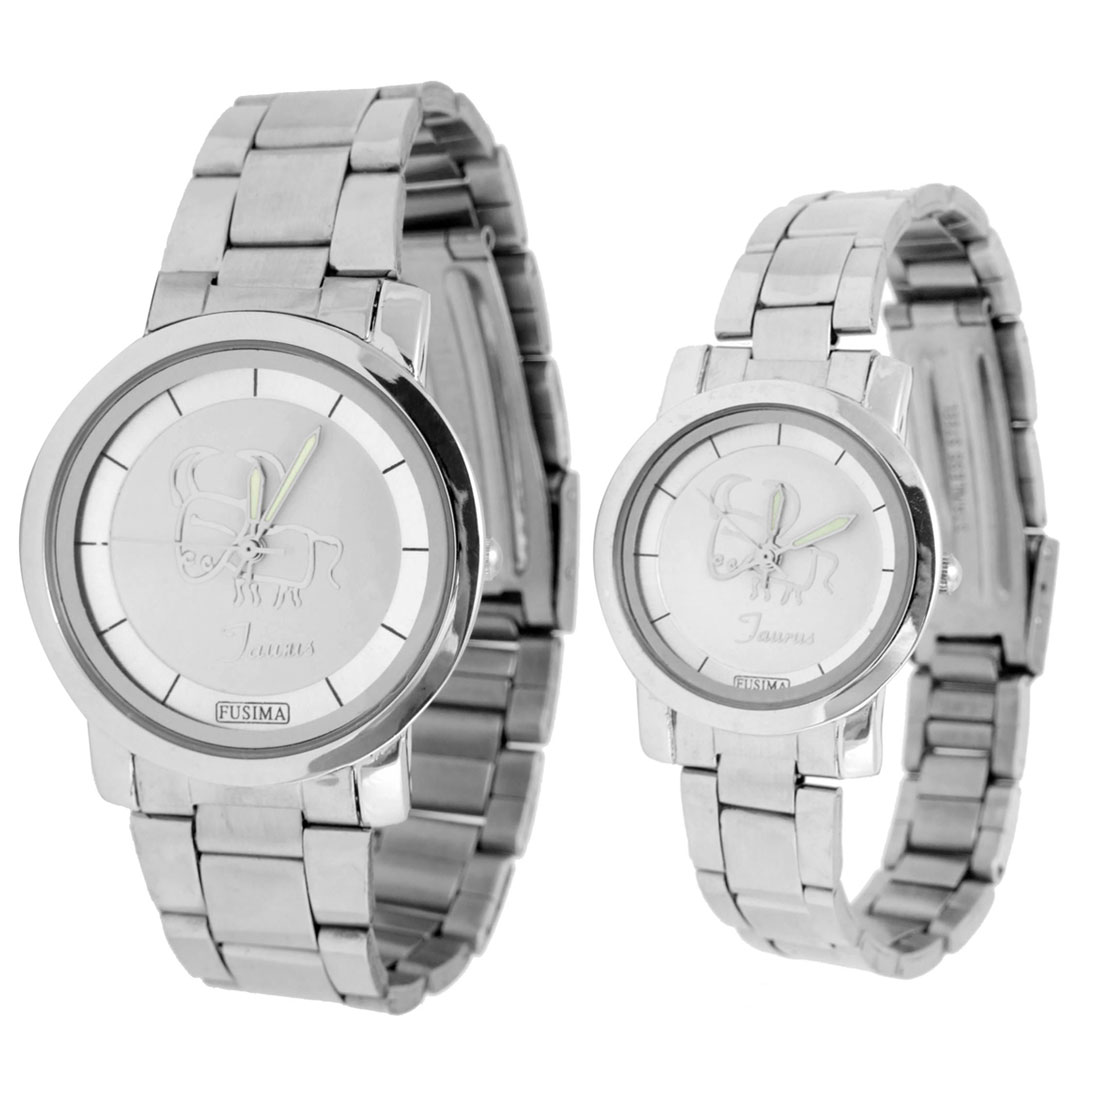 Fashion Jewelry One Pair of Watches for Man's Lady's Fere Wristwatch Silver Tone